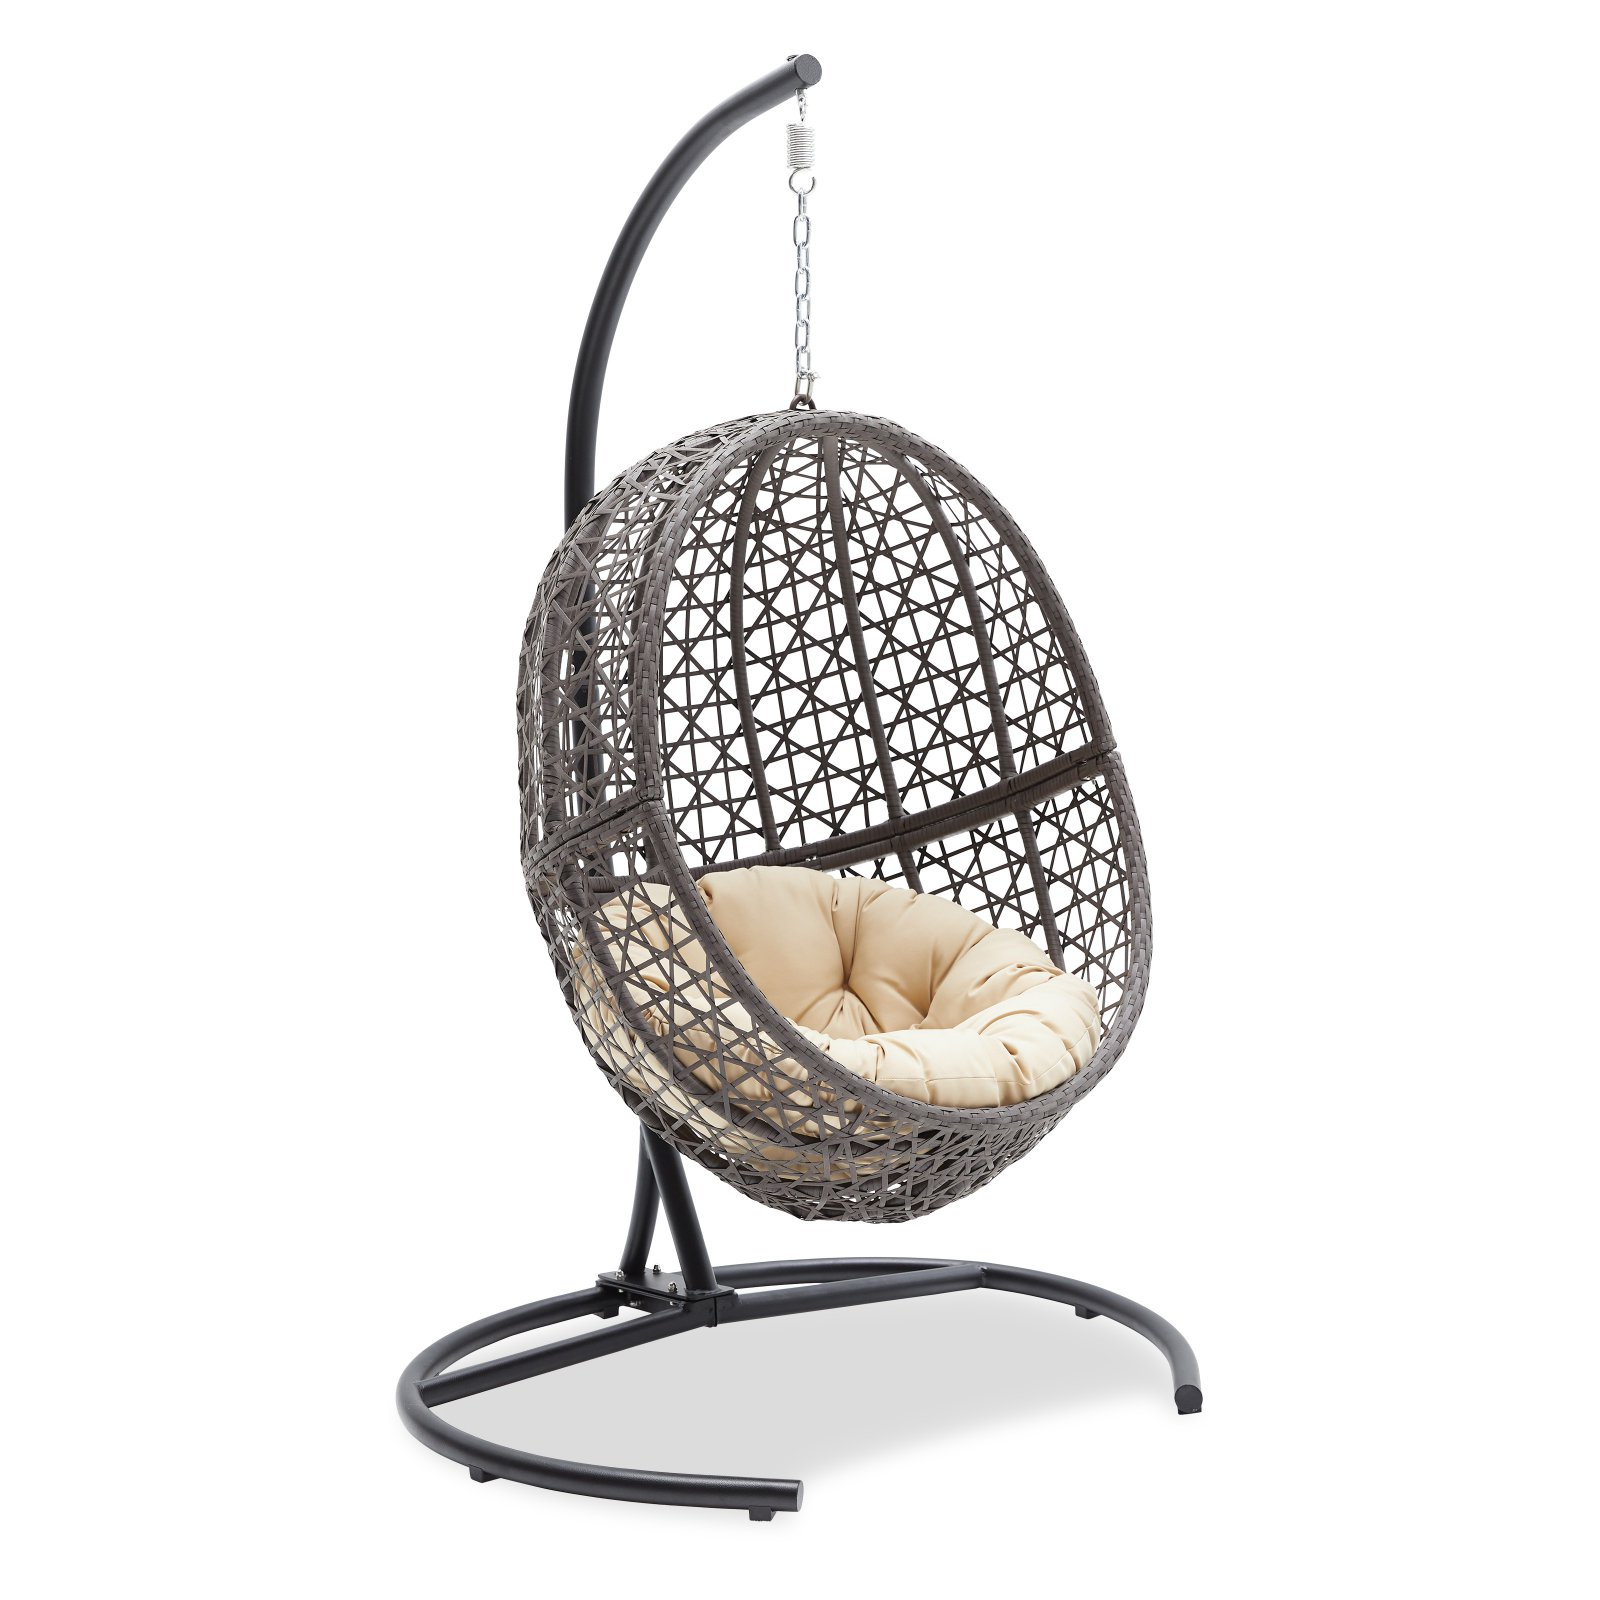 Cheap Hanging Egg Chair Belham Living Resin Wicker Hanging Egg Chair With Cushion And Stand